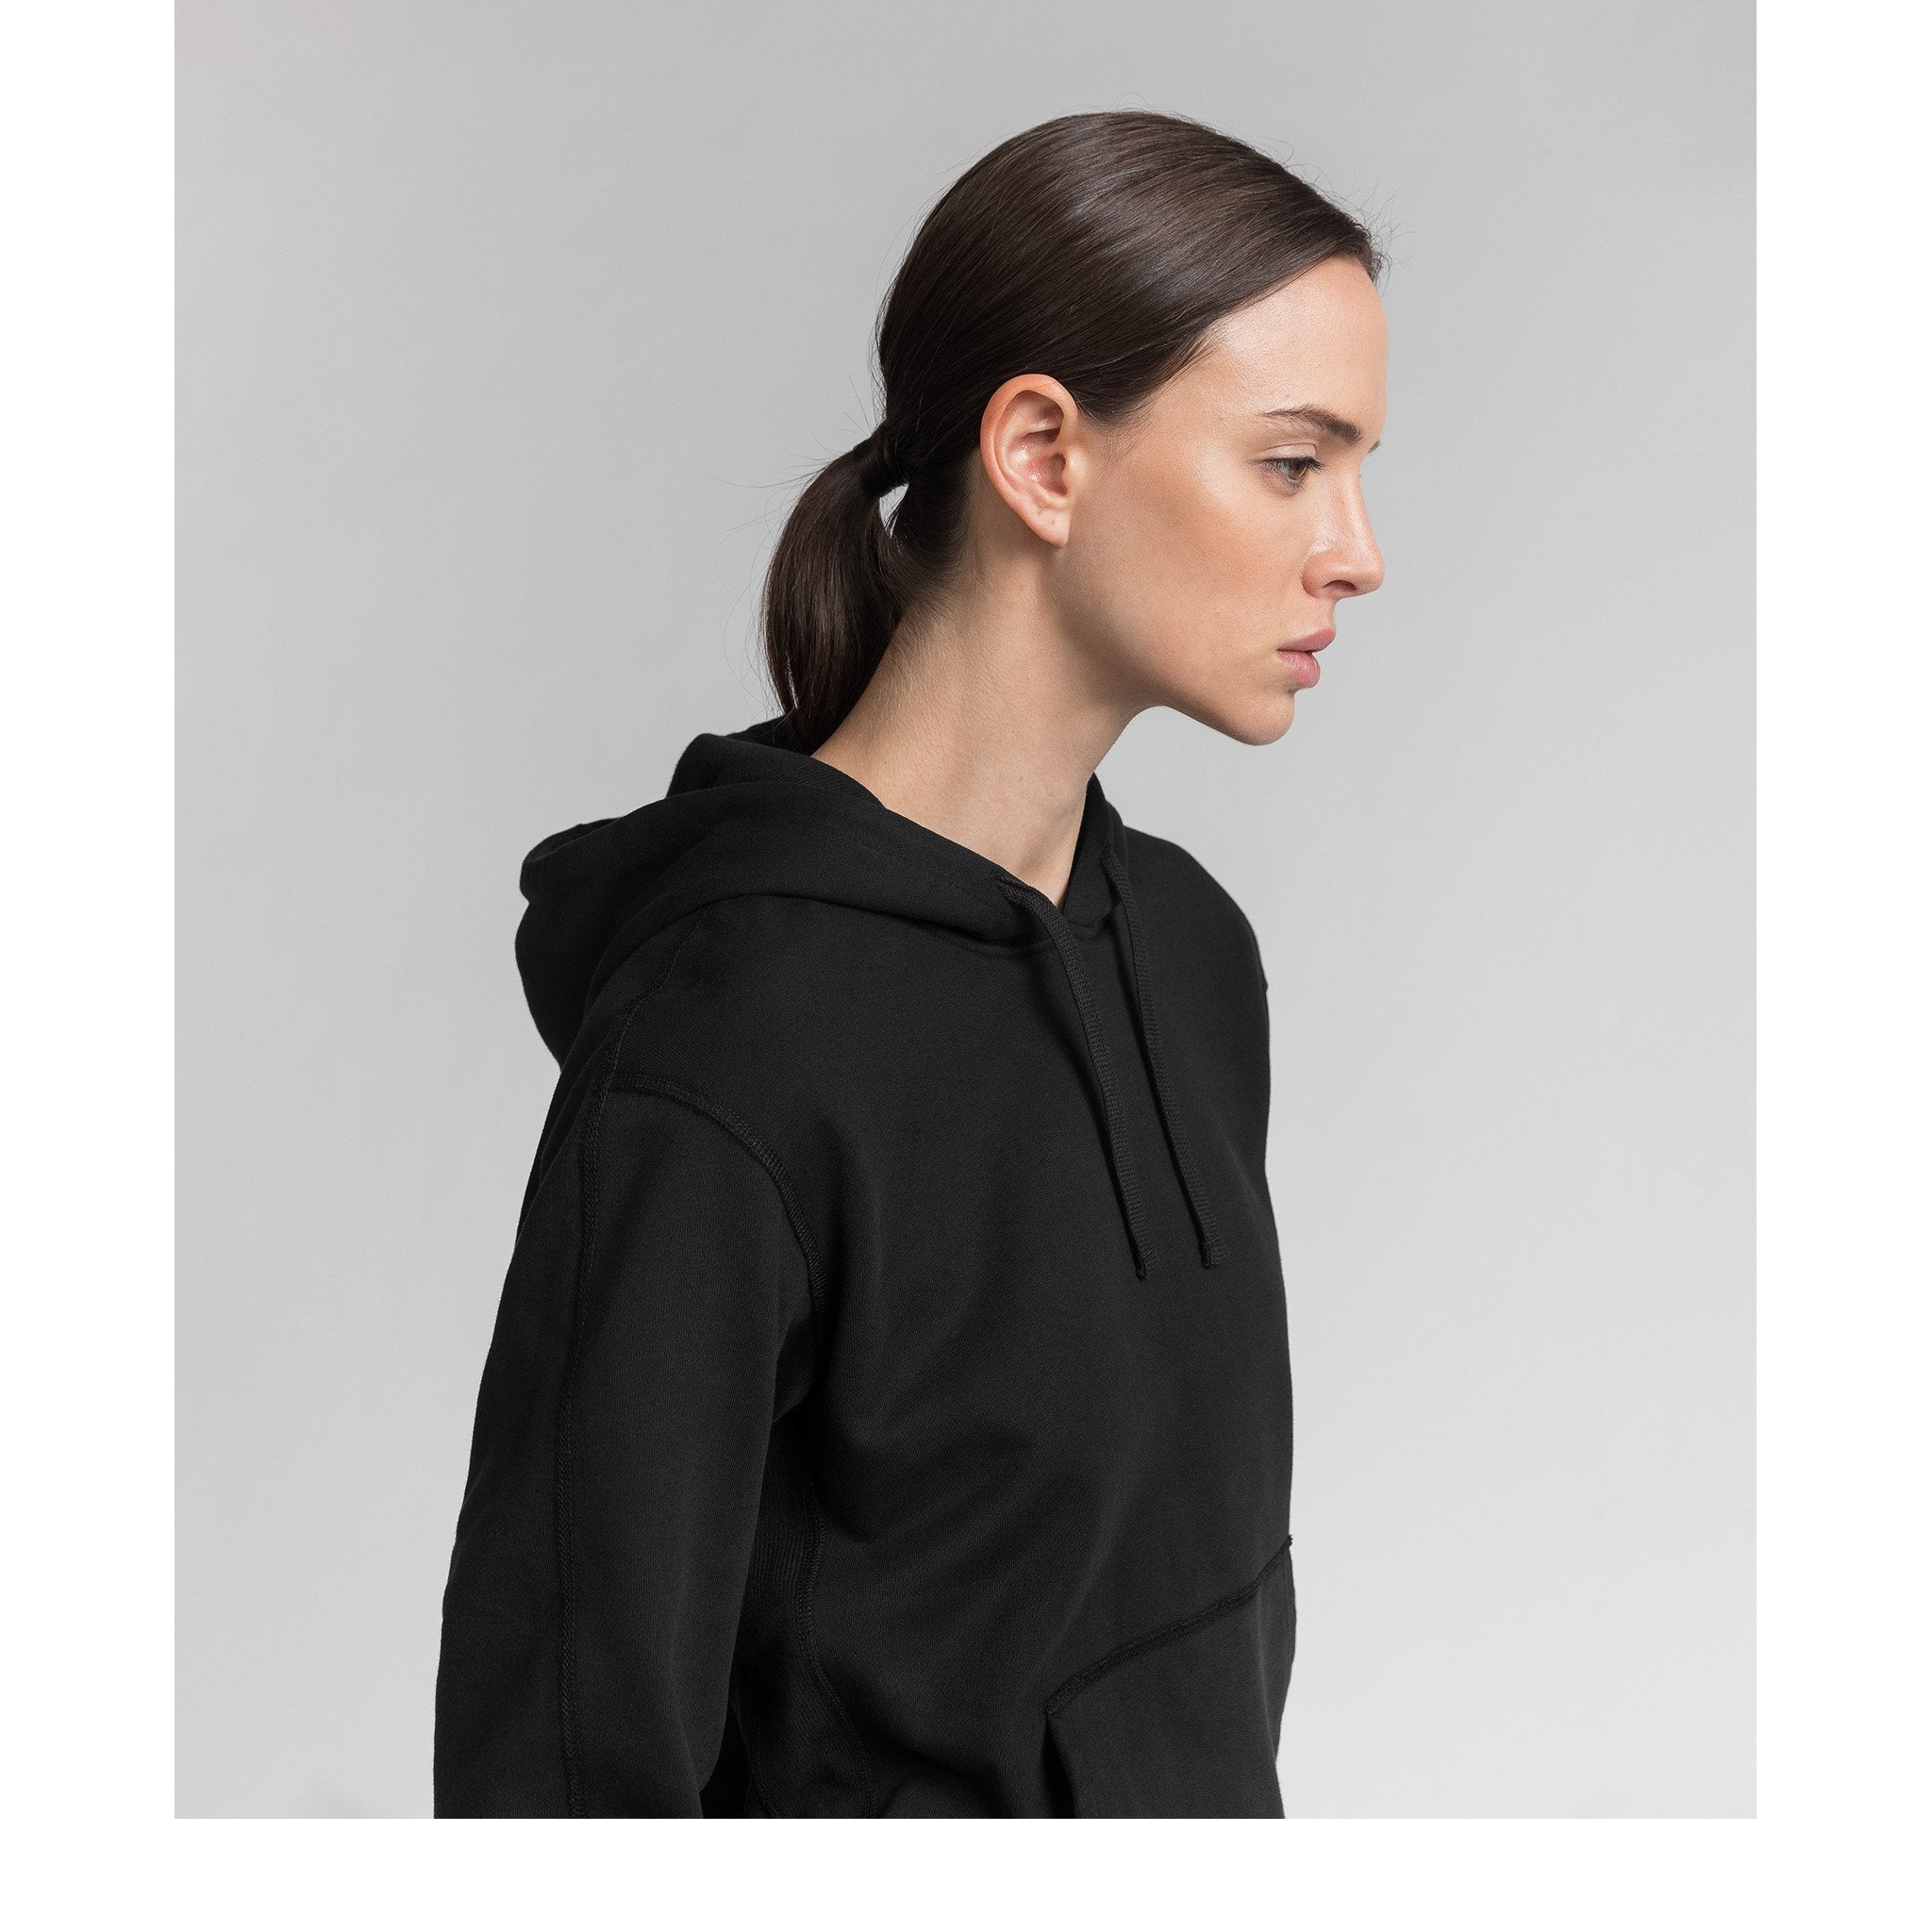 REIGNING CHAMP W'S HOODIES RELAXED HOODIE